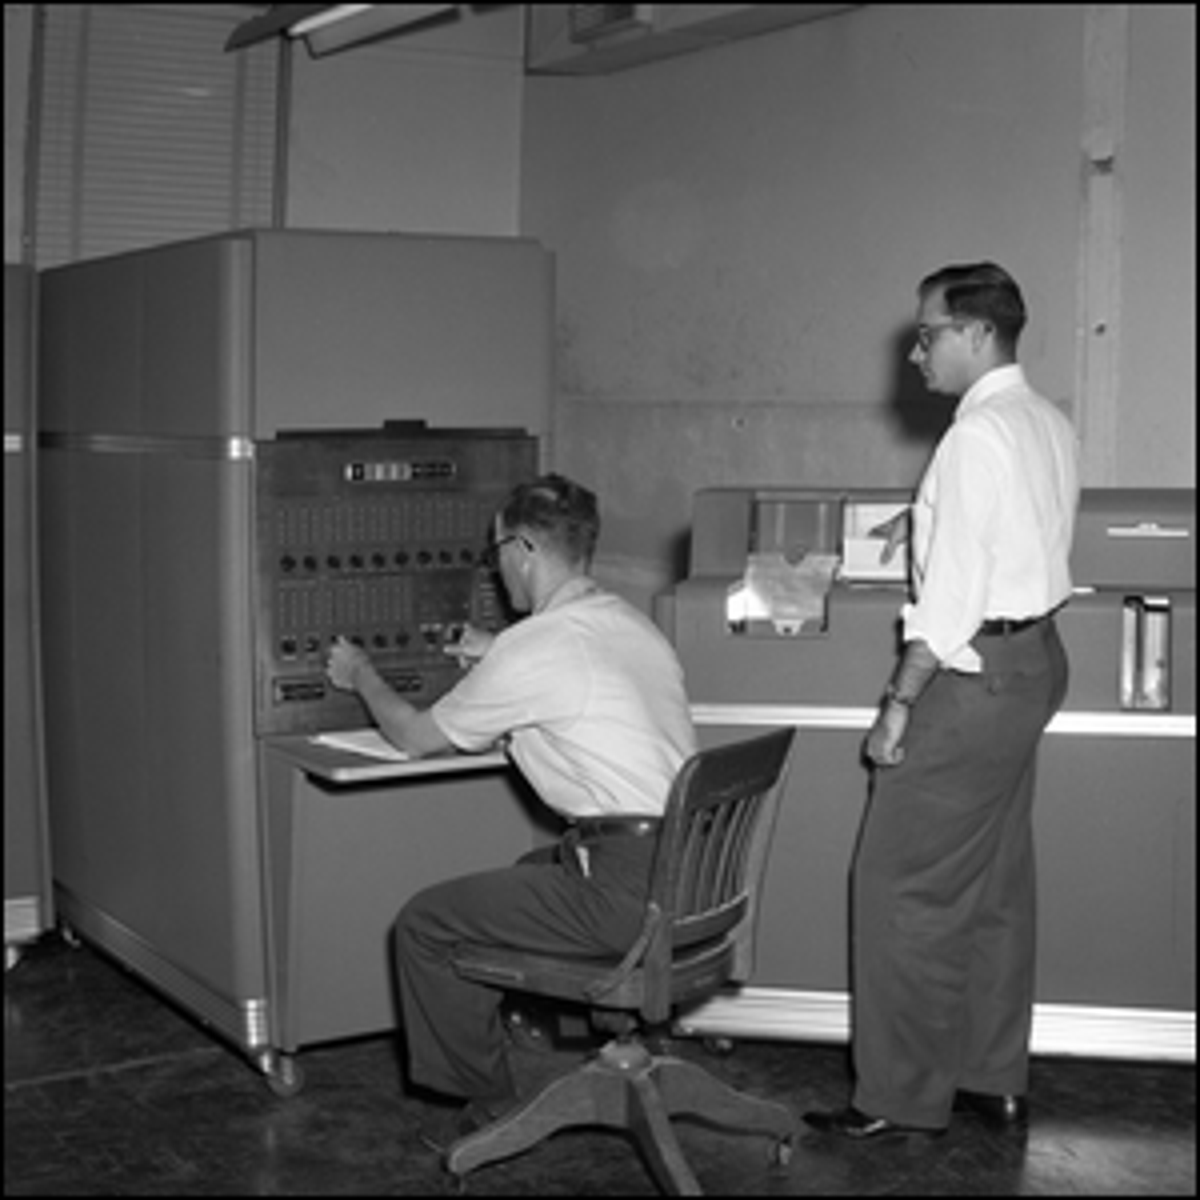 The IBM 650 computer at Texas A&M University, College Station, Texas during the 1950s.